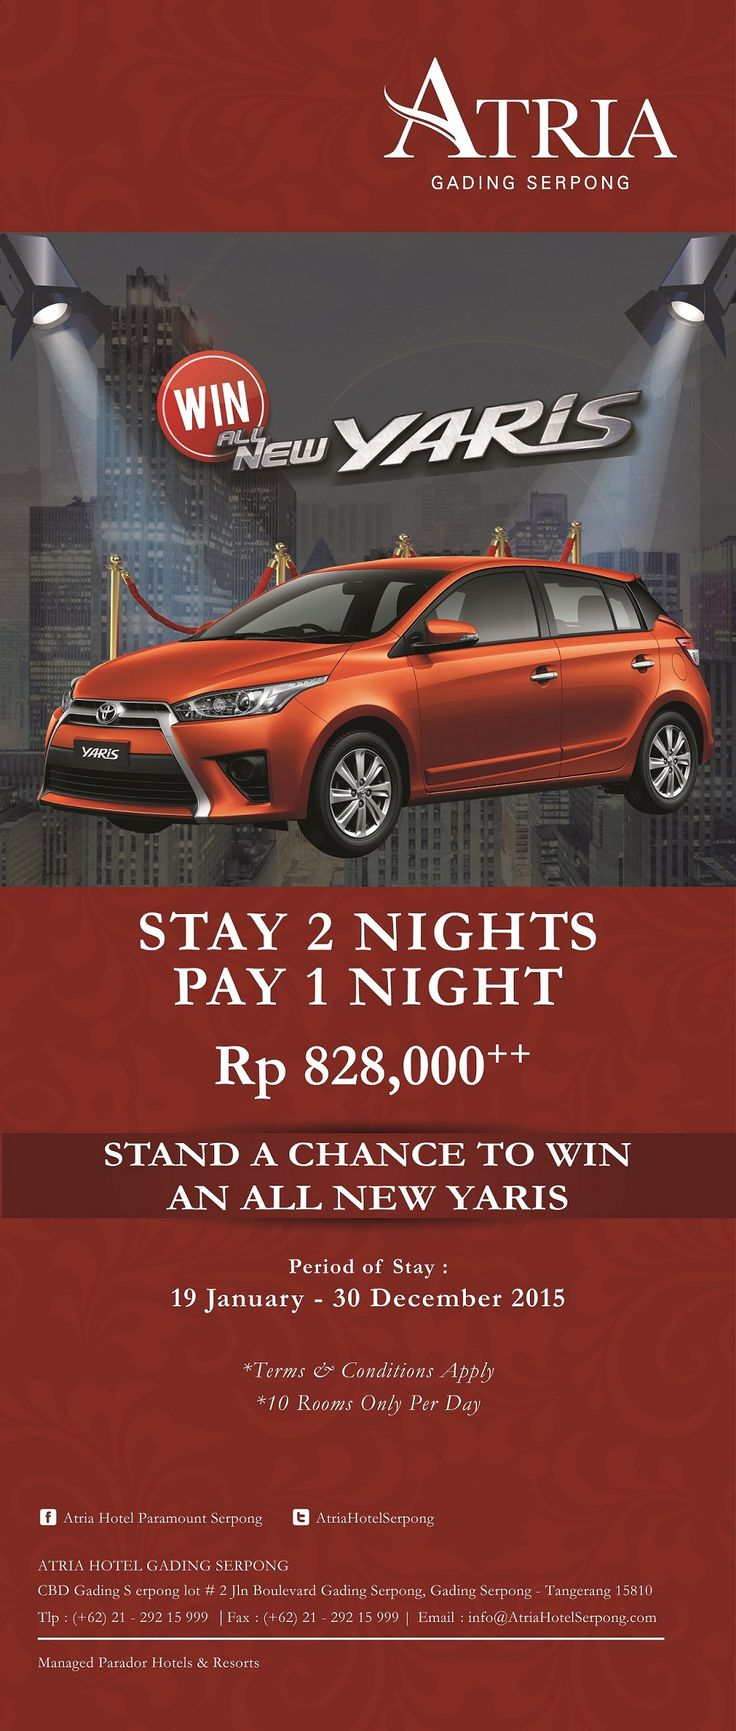 Stay 2 Nights Pay 1 Night and stand a chance to win an All New Yaris Toyota.  For more info please call 021-29215999 #ParadorCarGiveaway